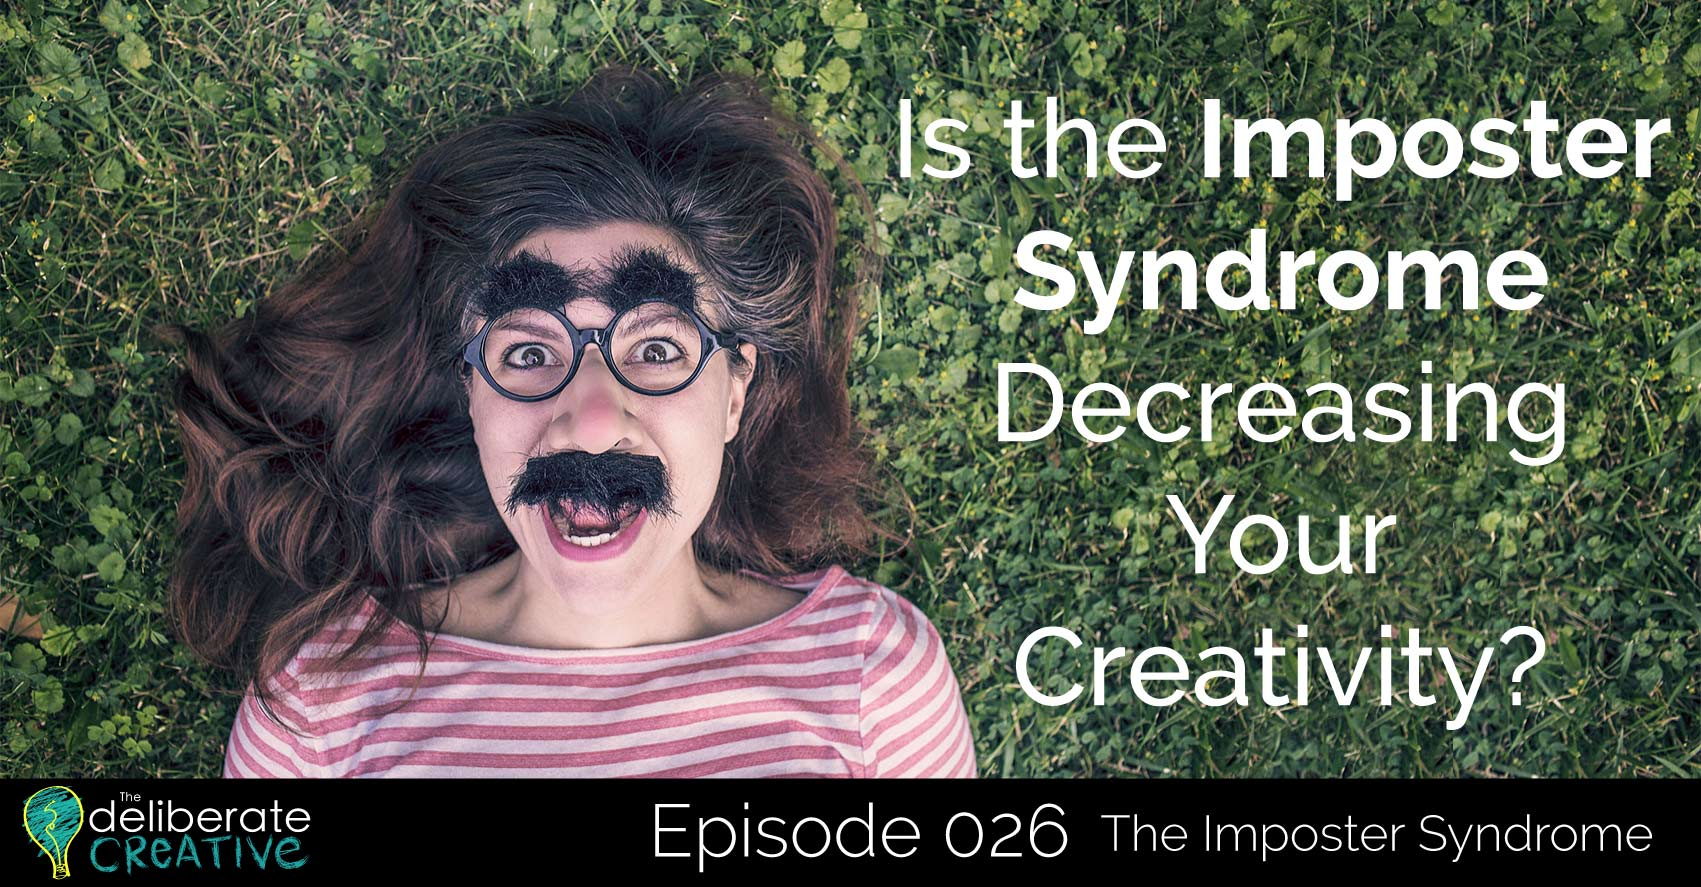 Is the Imposter Syndrome Decreasing Your Creativity?